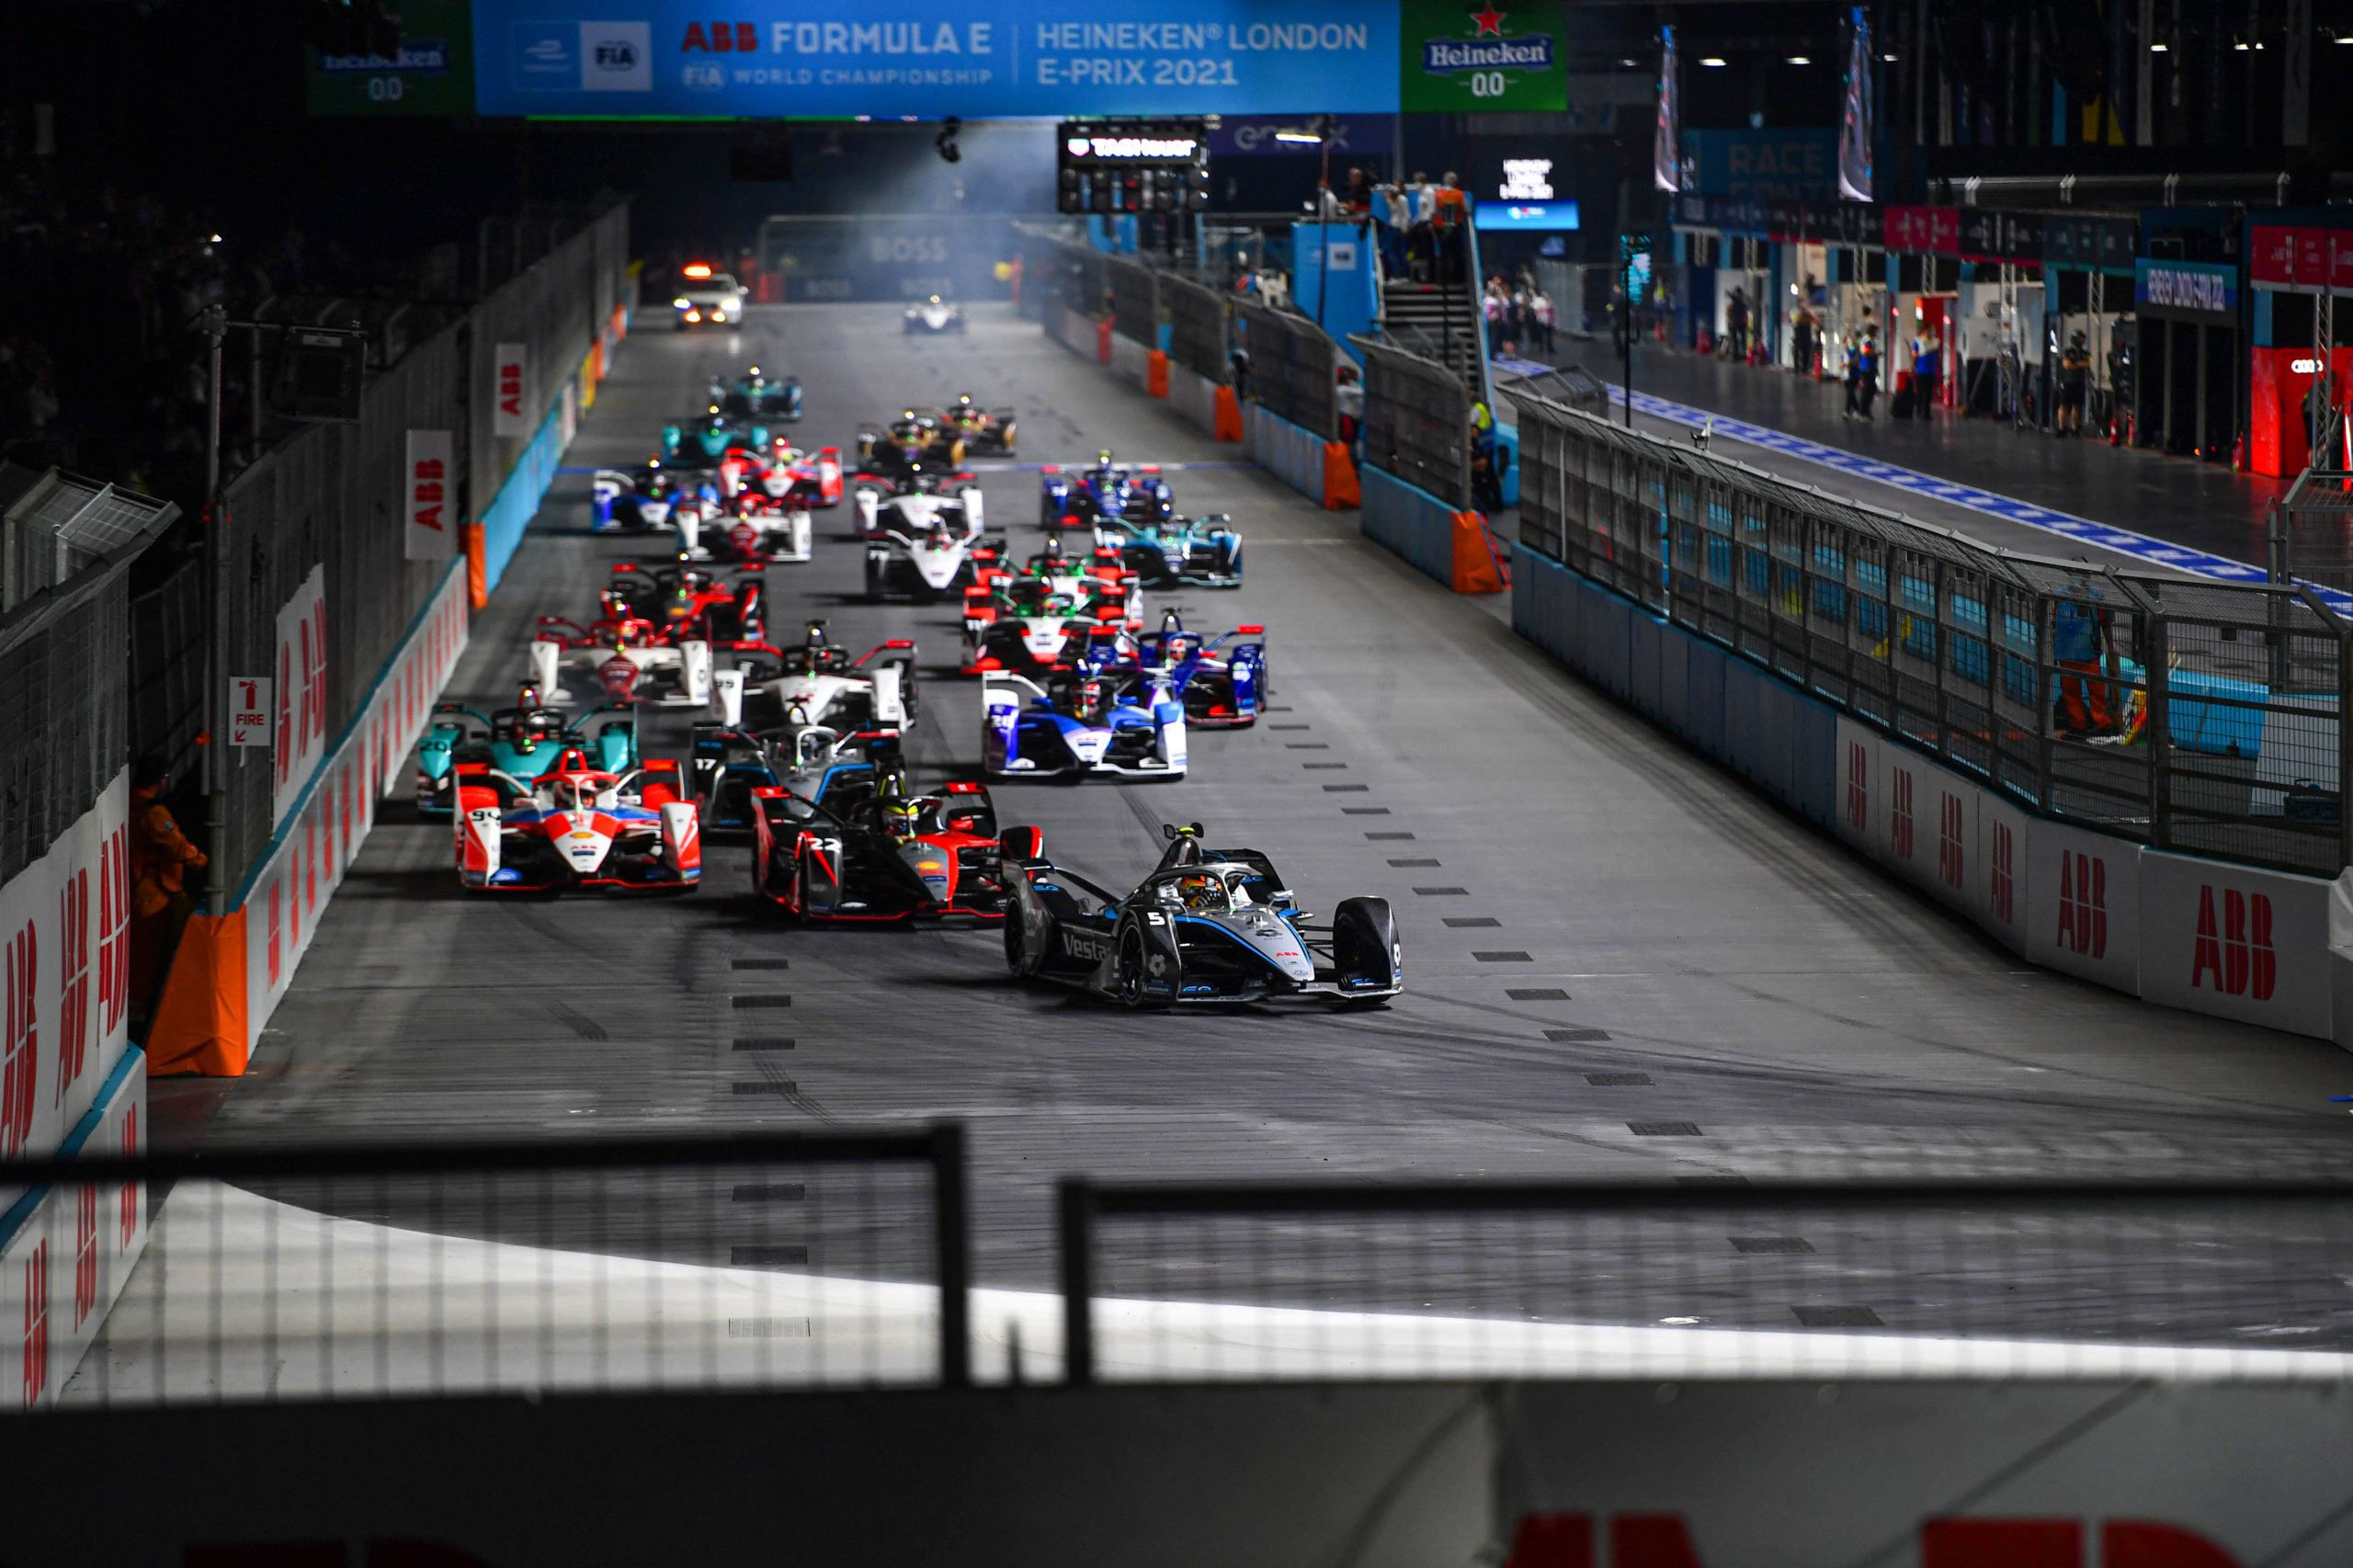 Stoffel Vandoorne (BEL), Mercedes Benz EQ, EQ Silver Arrow 02, leads Oliver Rowland (GBR), Nissan e.Dams, Nissan IMO3, Alex Lynn (GBR), Mahindra Racing, M7Electro, and the rest of the field at the start